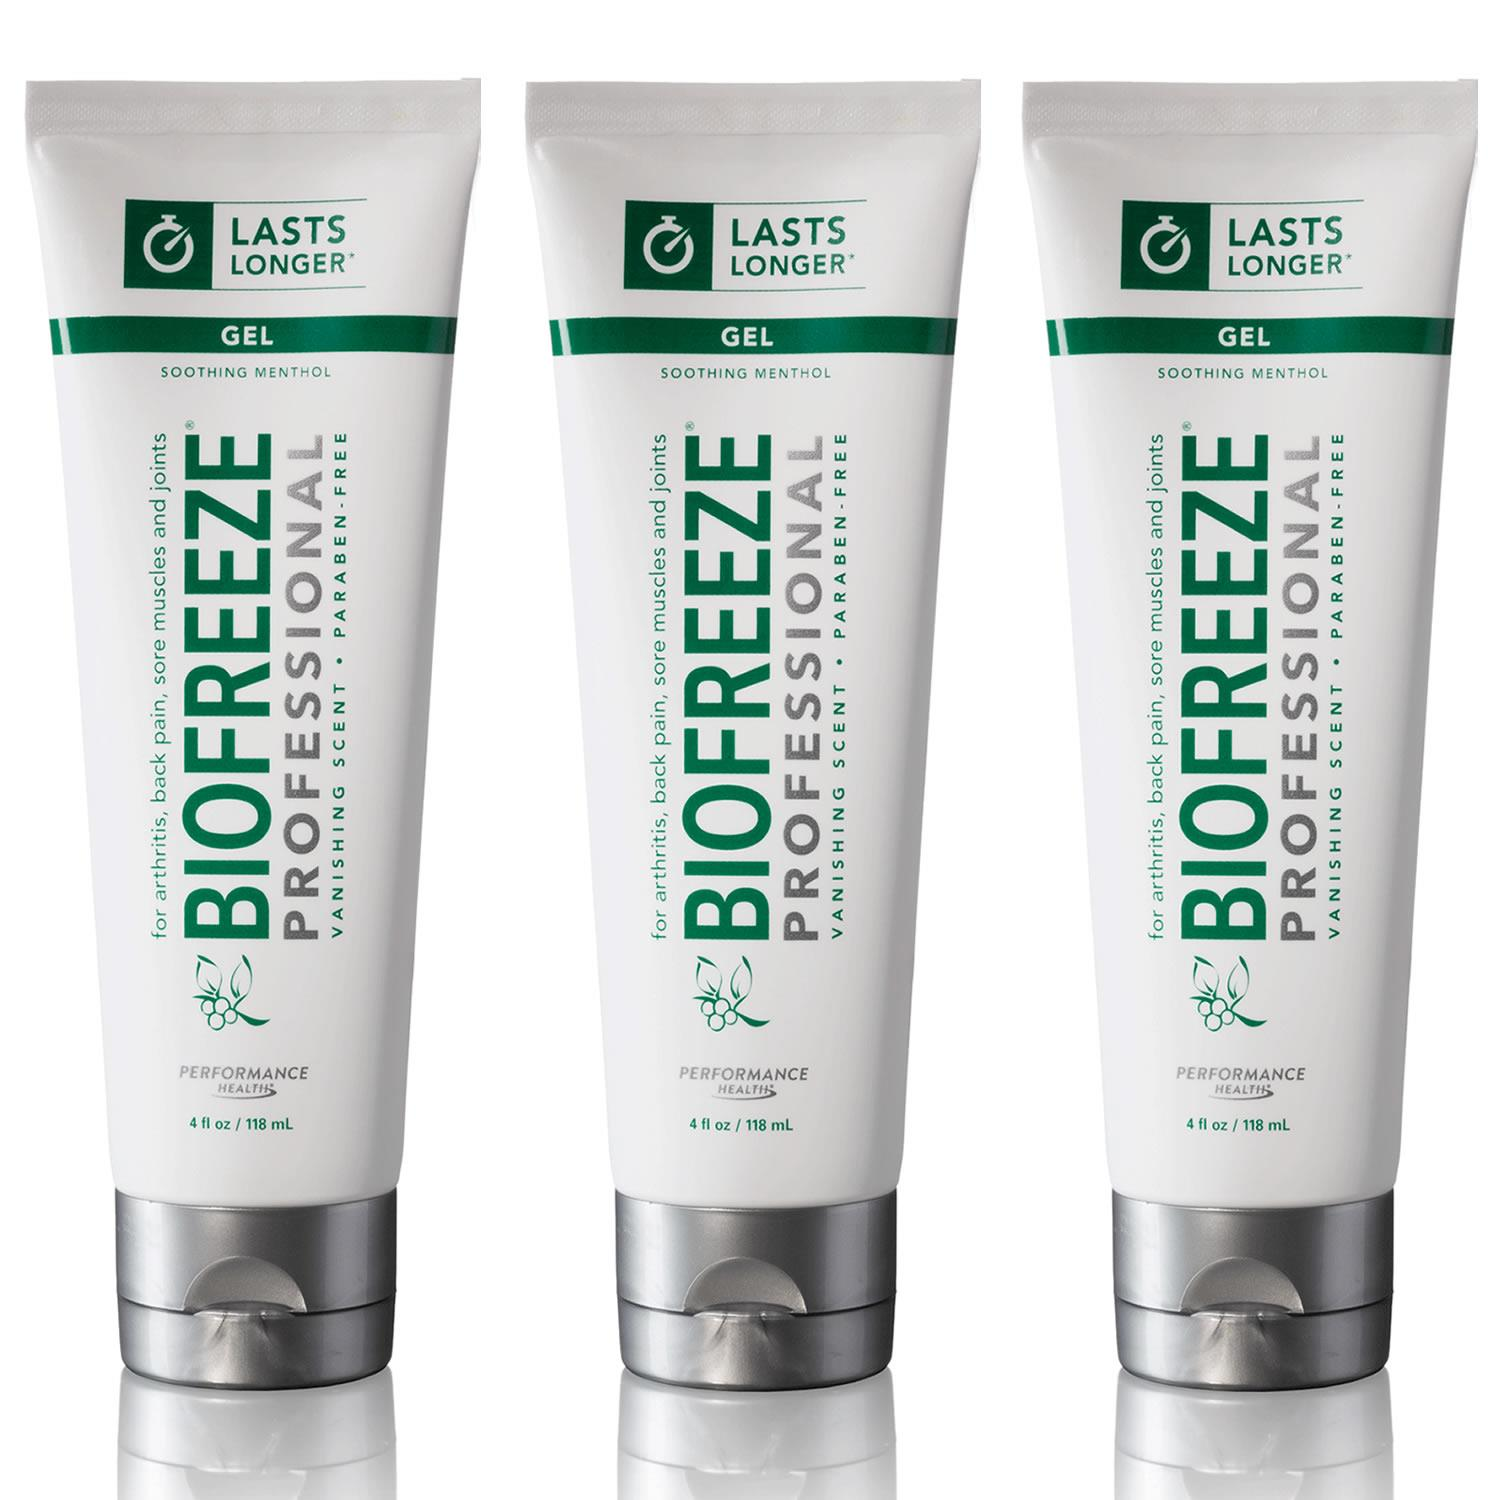 Biofreeze Biofreeze Professional 4oz Gel Tube 3PK Pain Relief Arthritis Back Muscle